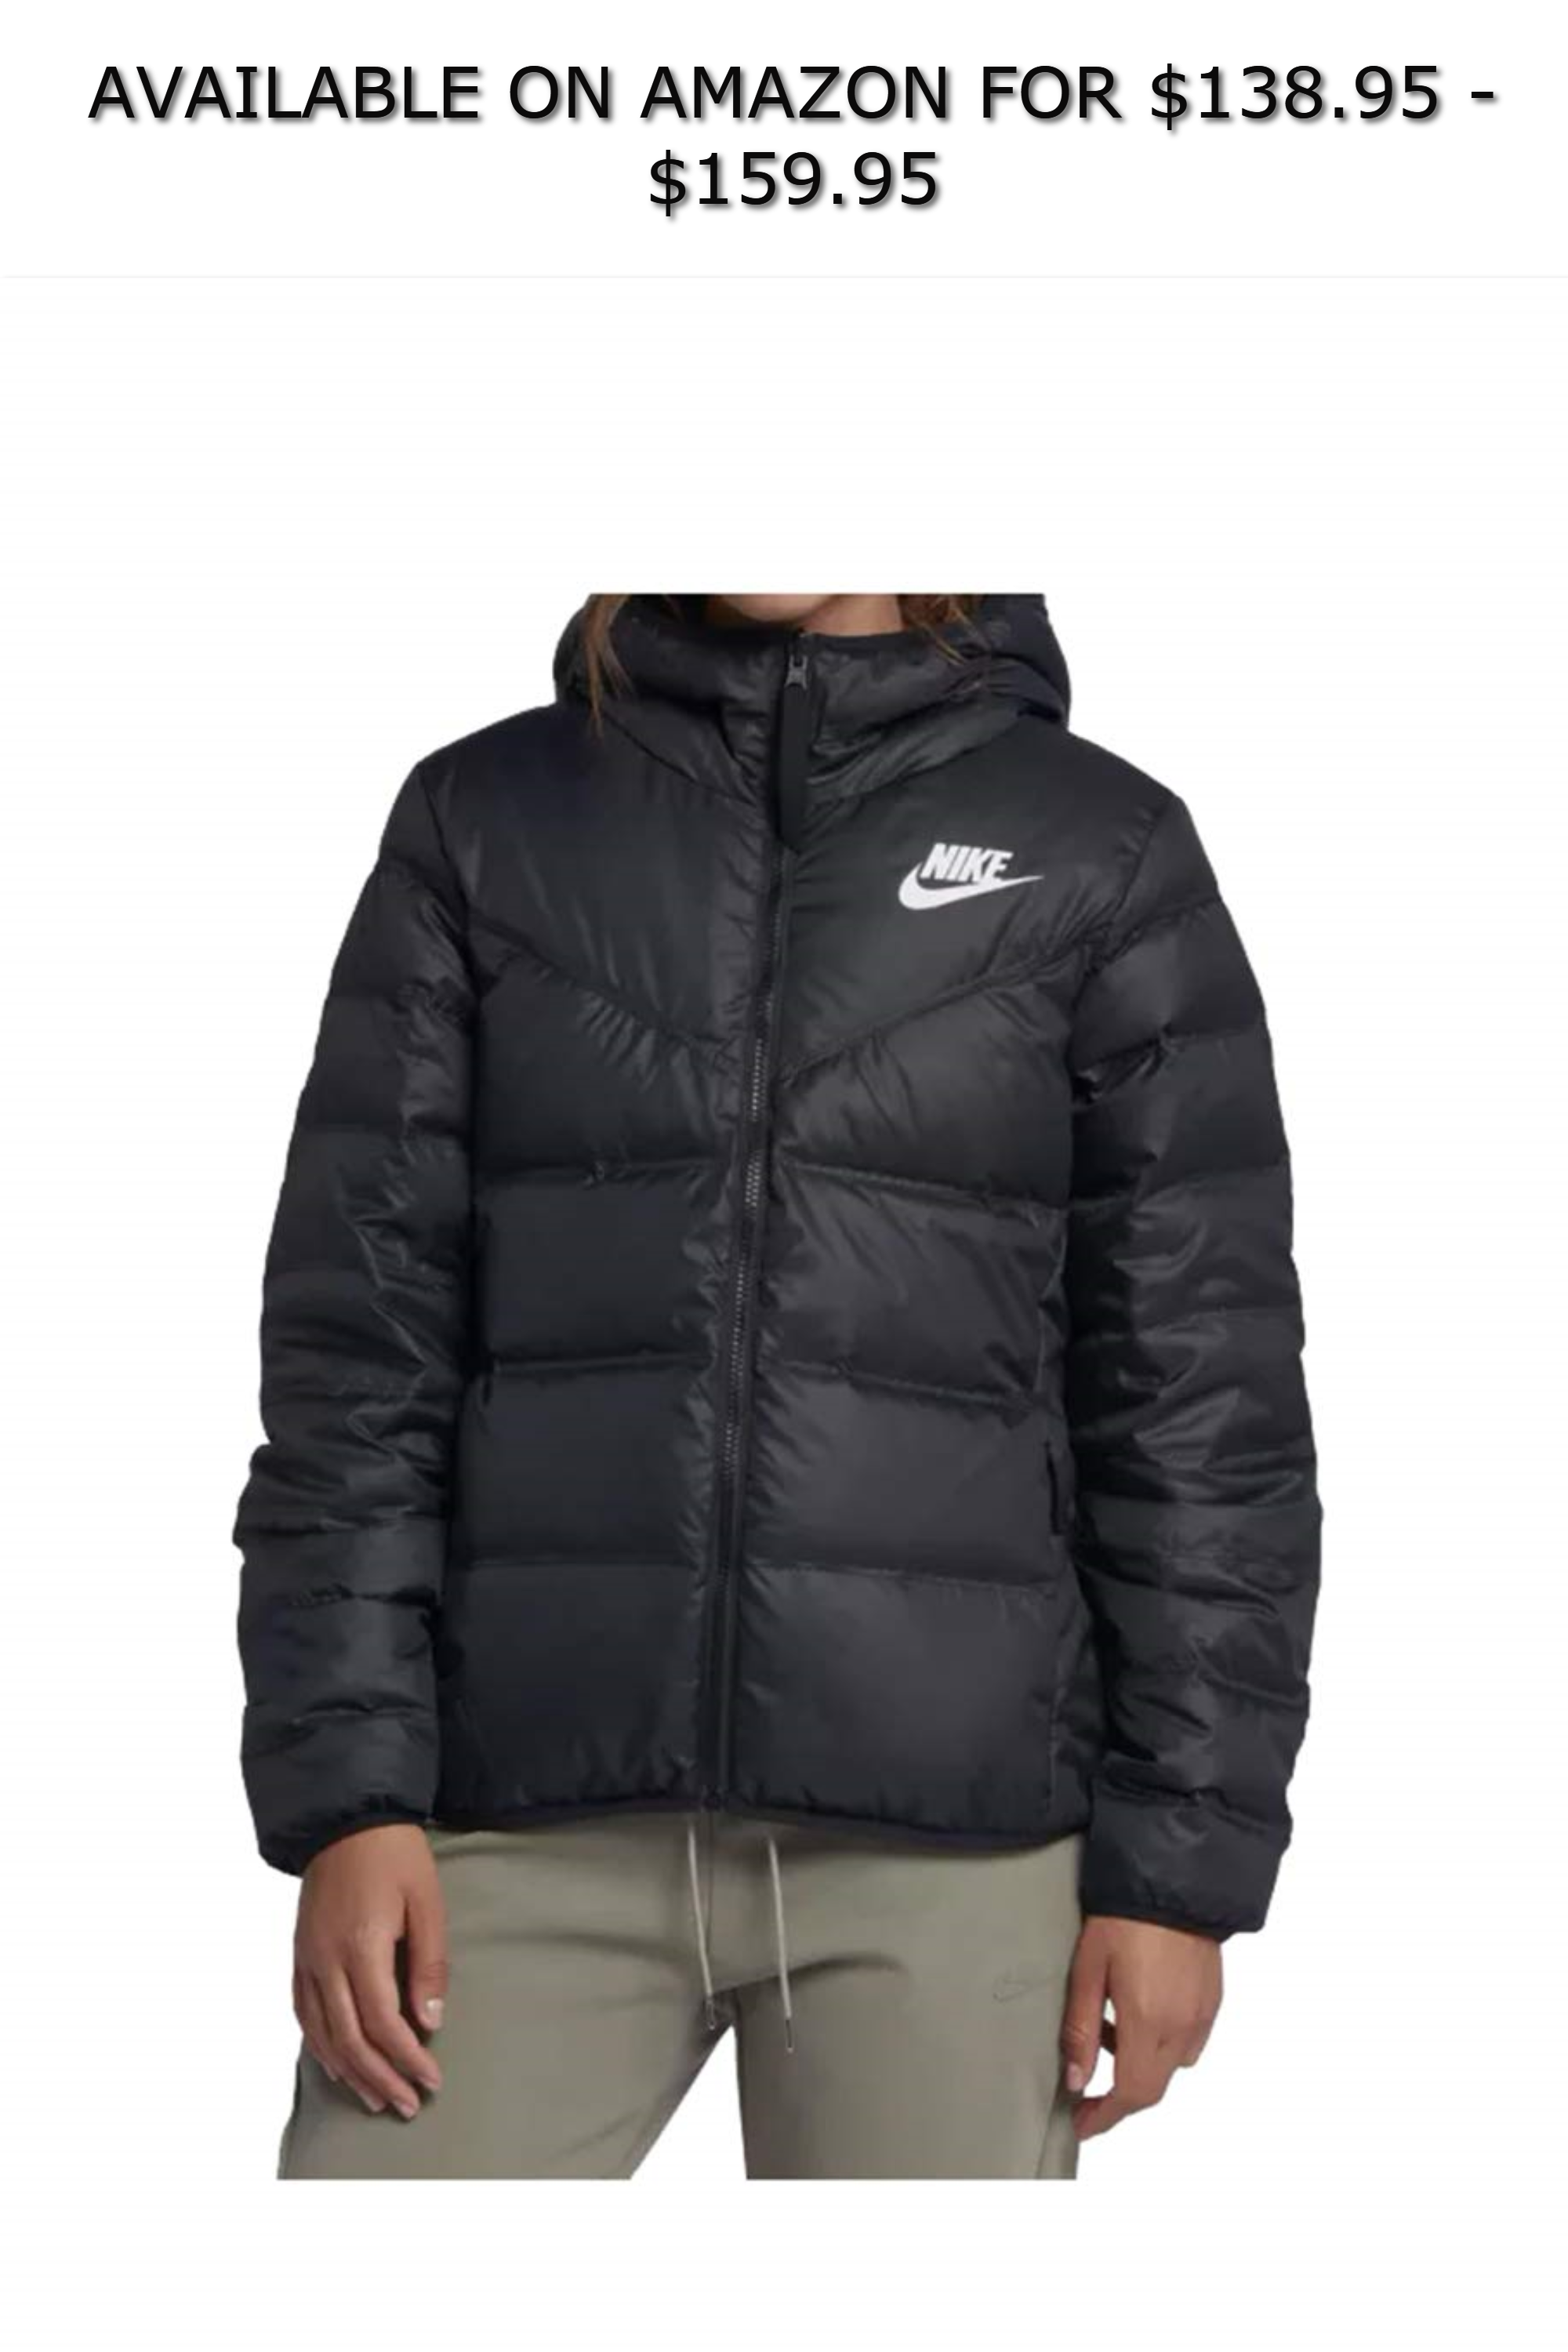 NIKE Womens Down Filled Reversible Windrunner Jacket ◇ AVAILABLE ON AMAZON  FOR   138.95 -  159.95 ◇ Made with a light weight down to keep you warm and  ... 0652c323e0bf